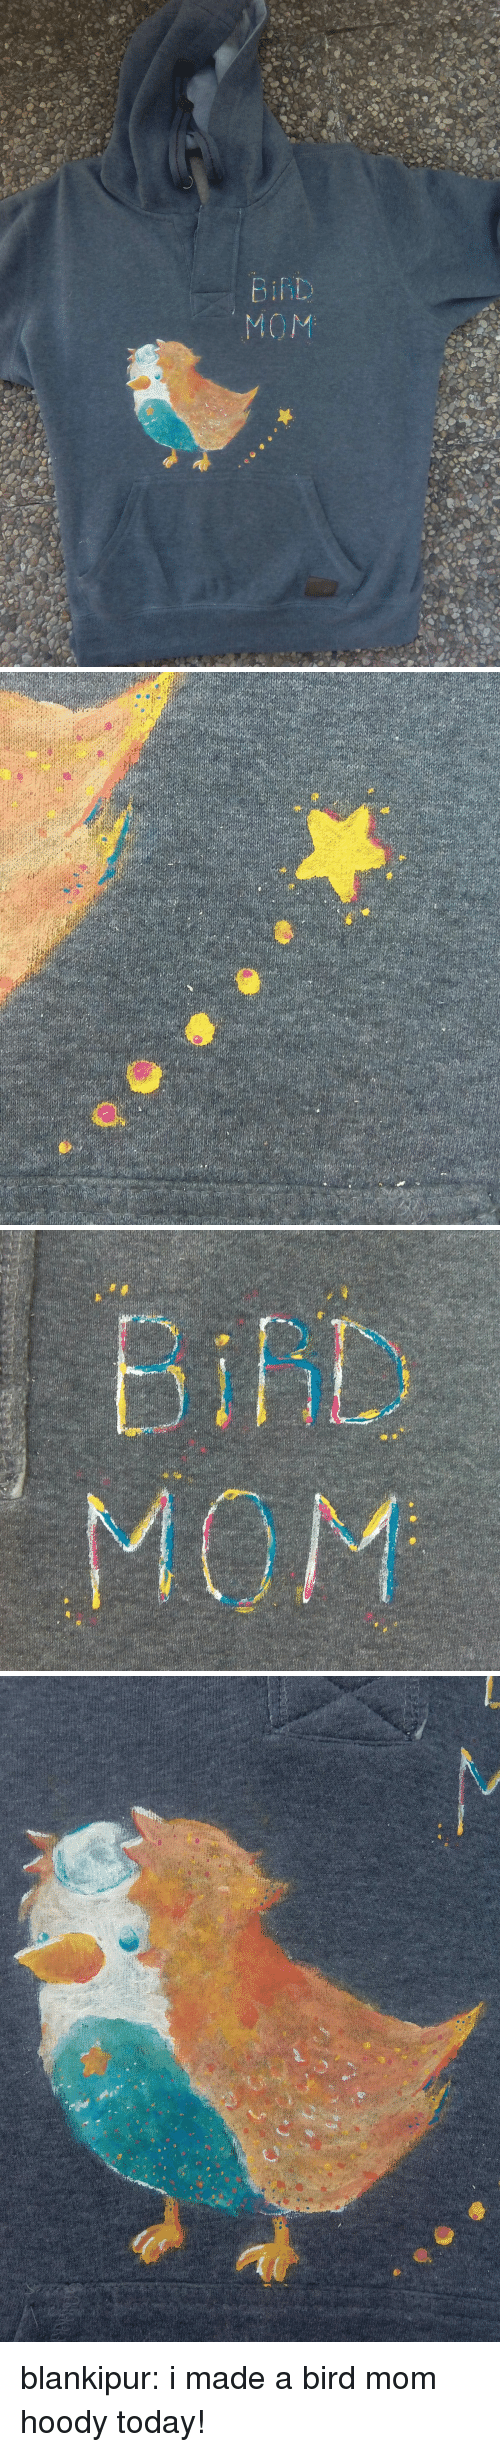 hoody: blankipur:  i made a bird mom hoody today!